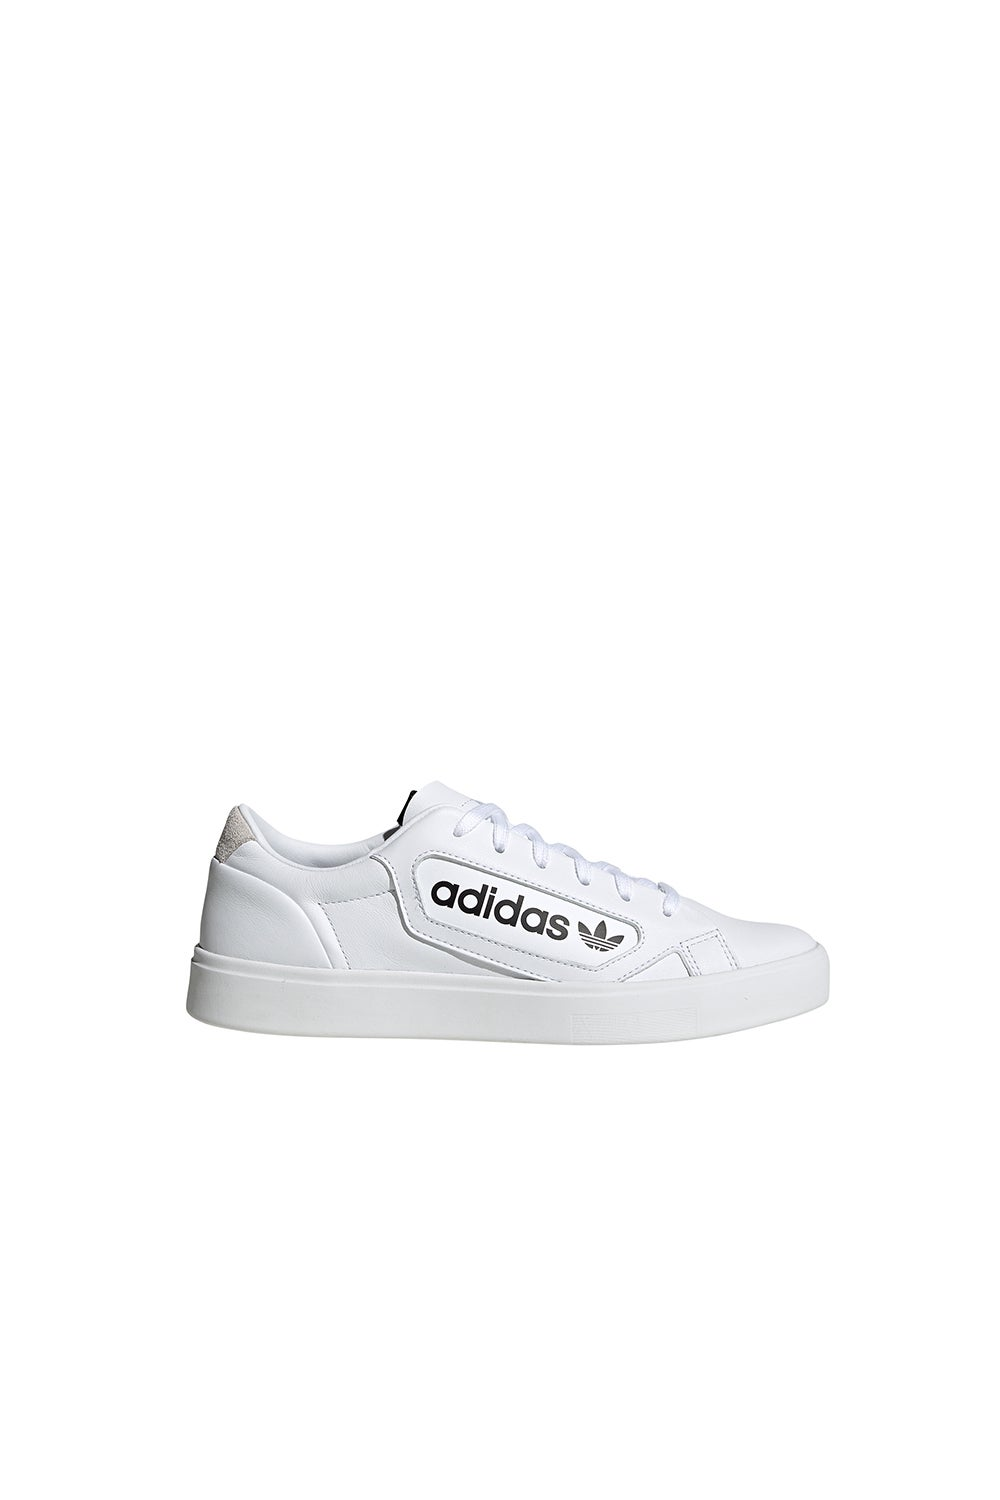 adidas Sleek FTWR White/Crystal White